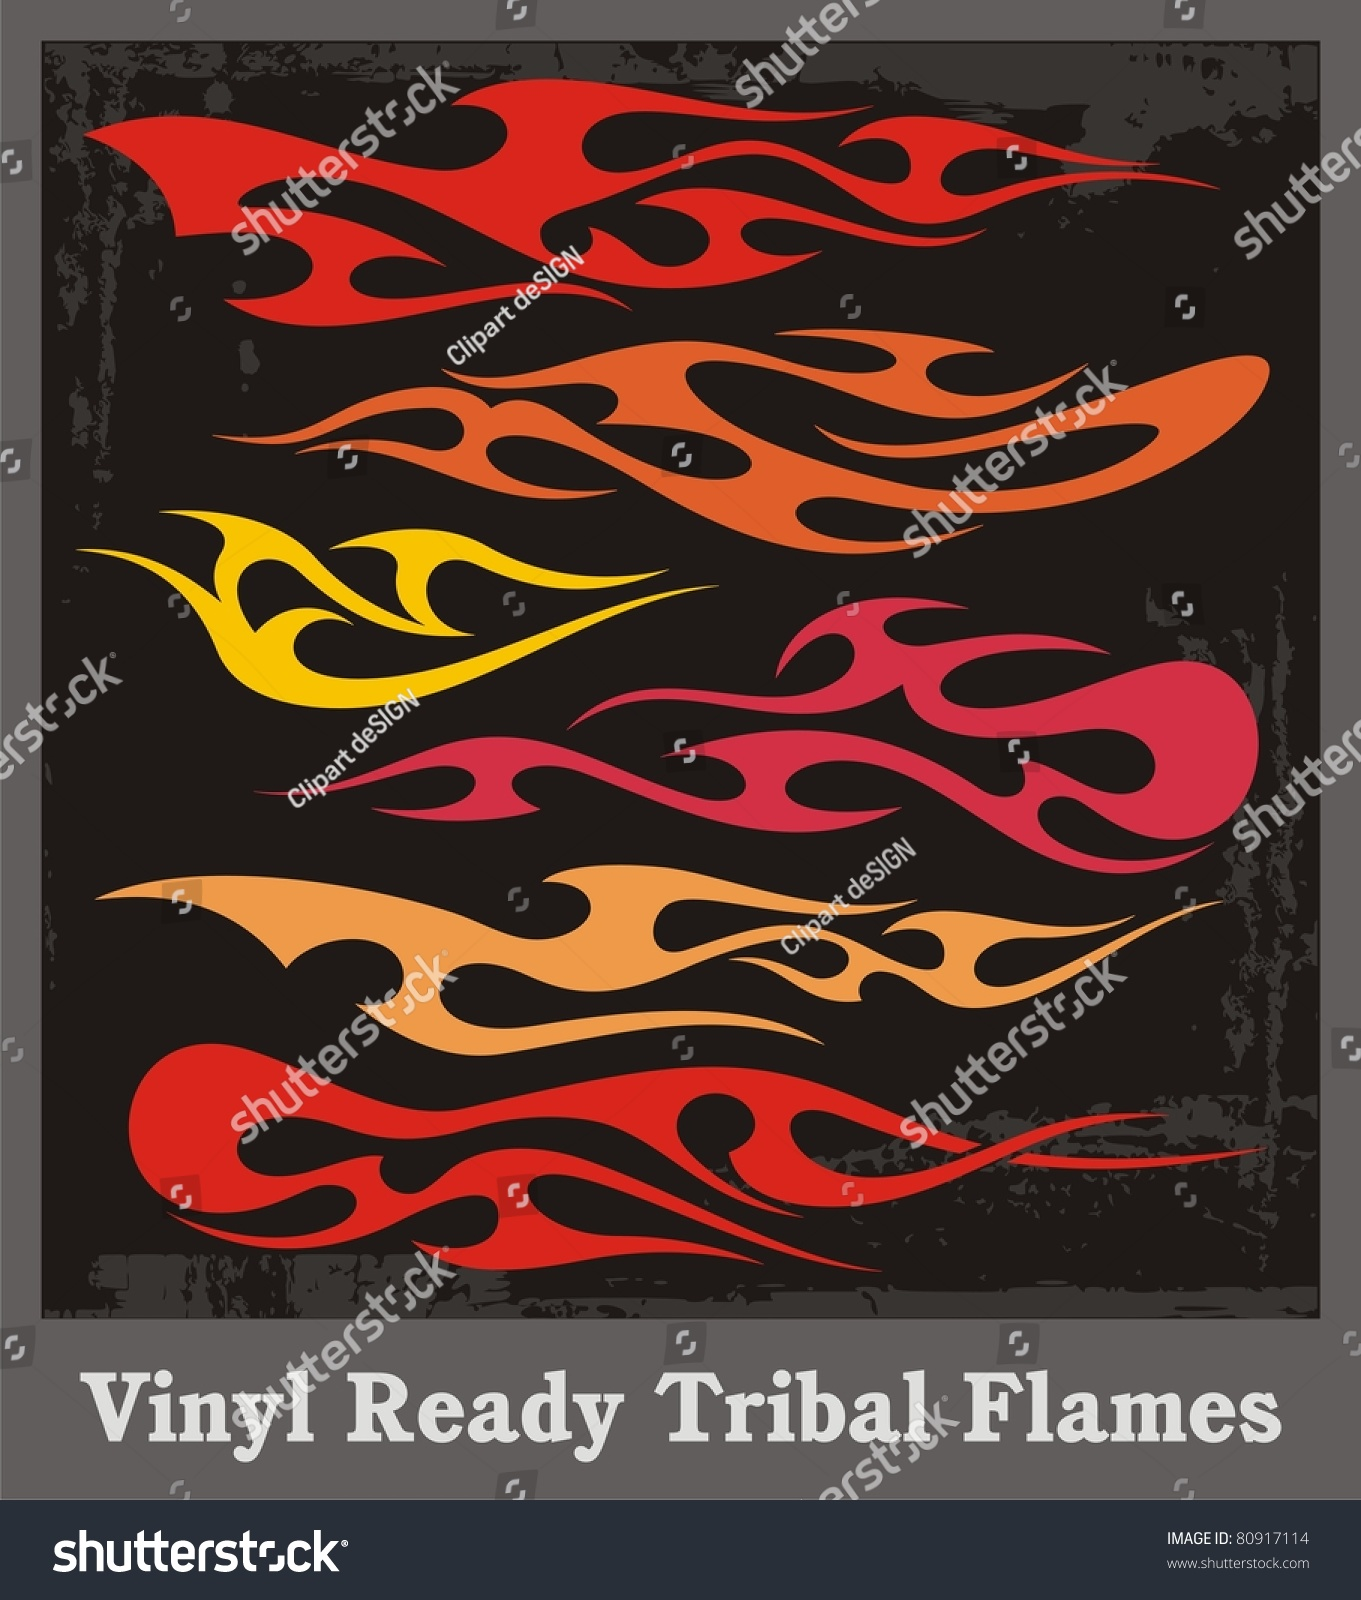 Tribal car sticker design - Vinyl Ready Tribal Flames Vector Graphics Great For Car Motorbike And T